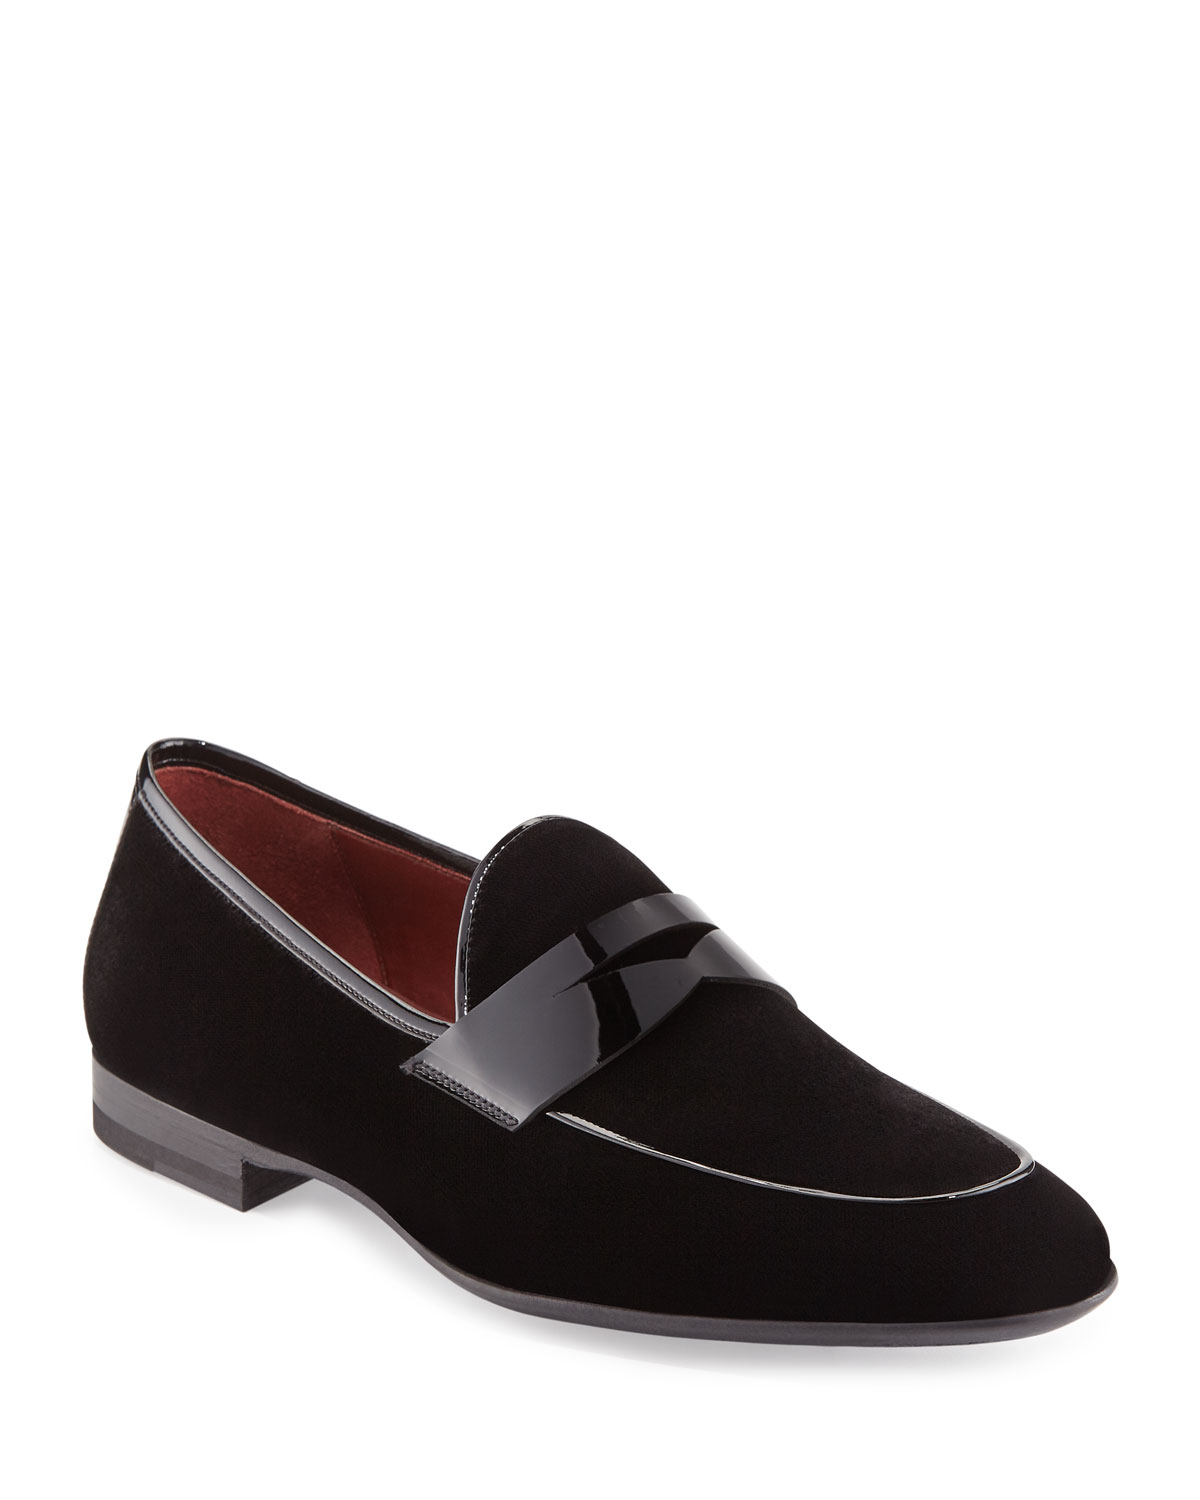 9f0d9800254 Magnanni for Neiman Marcus Velvet Formal Penny Loafer